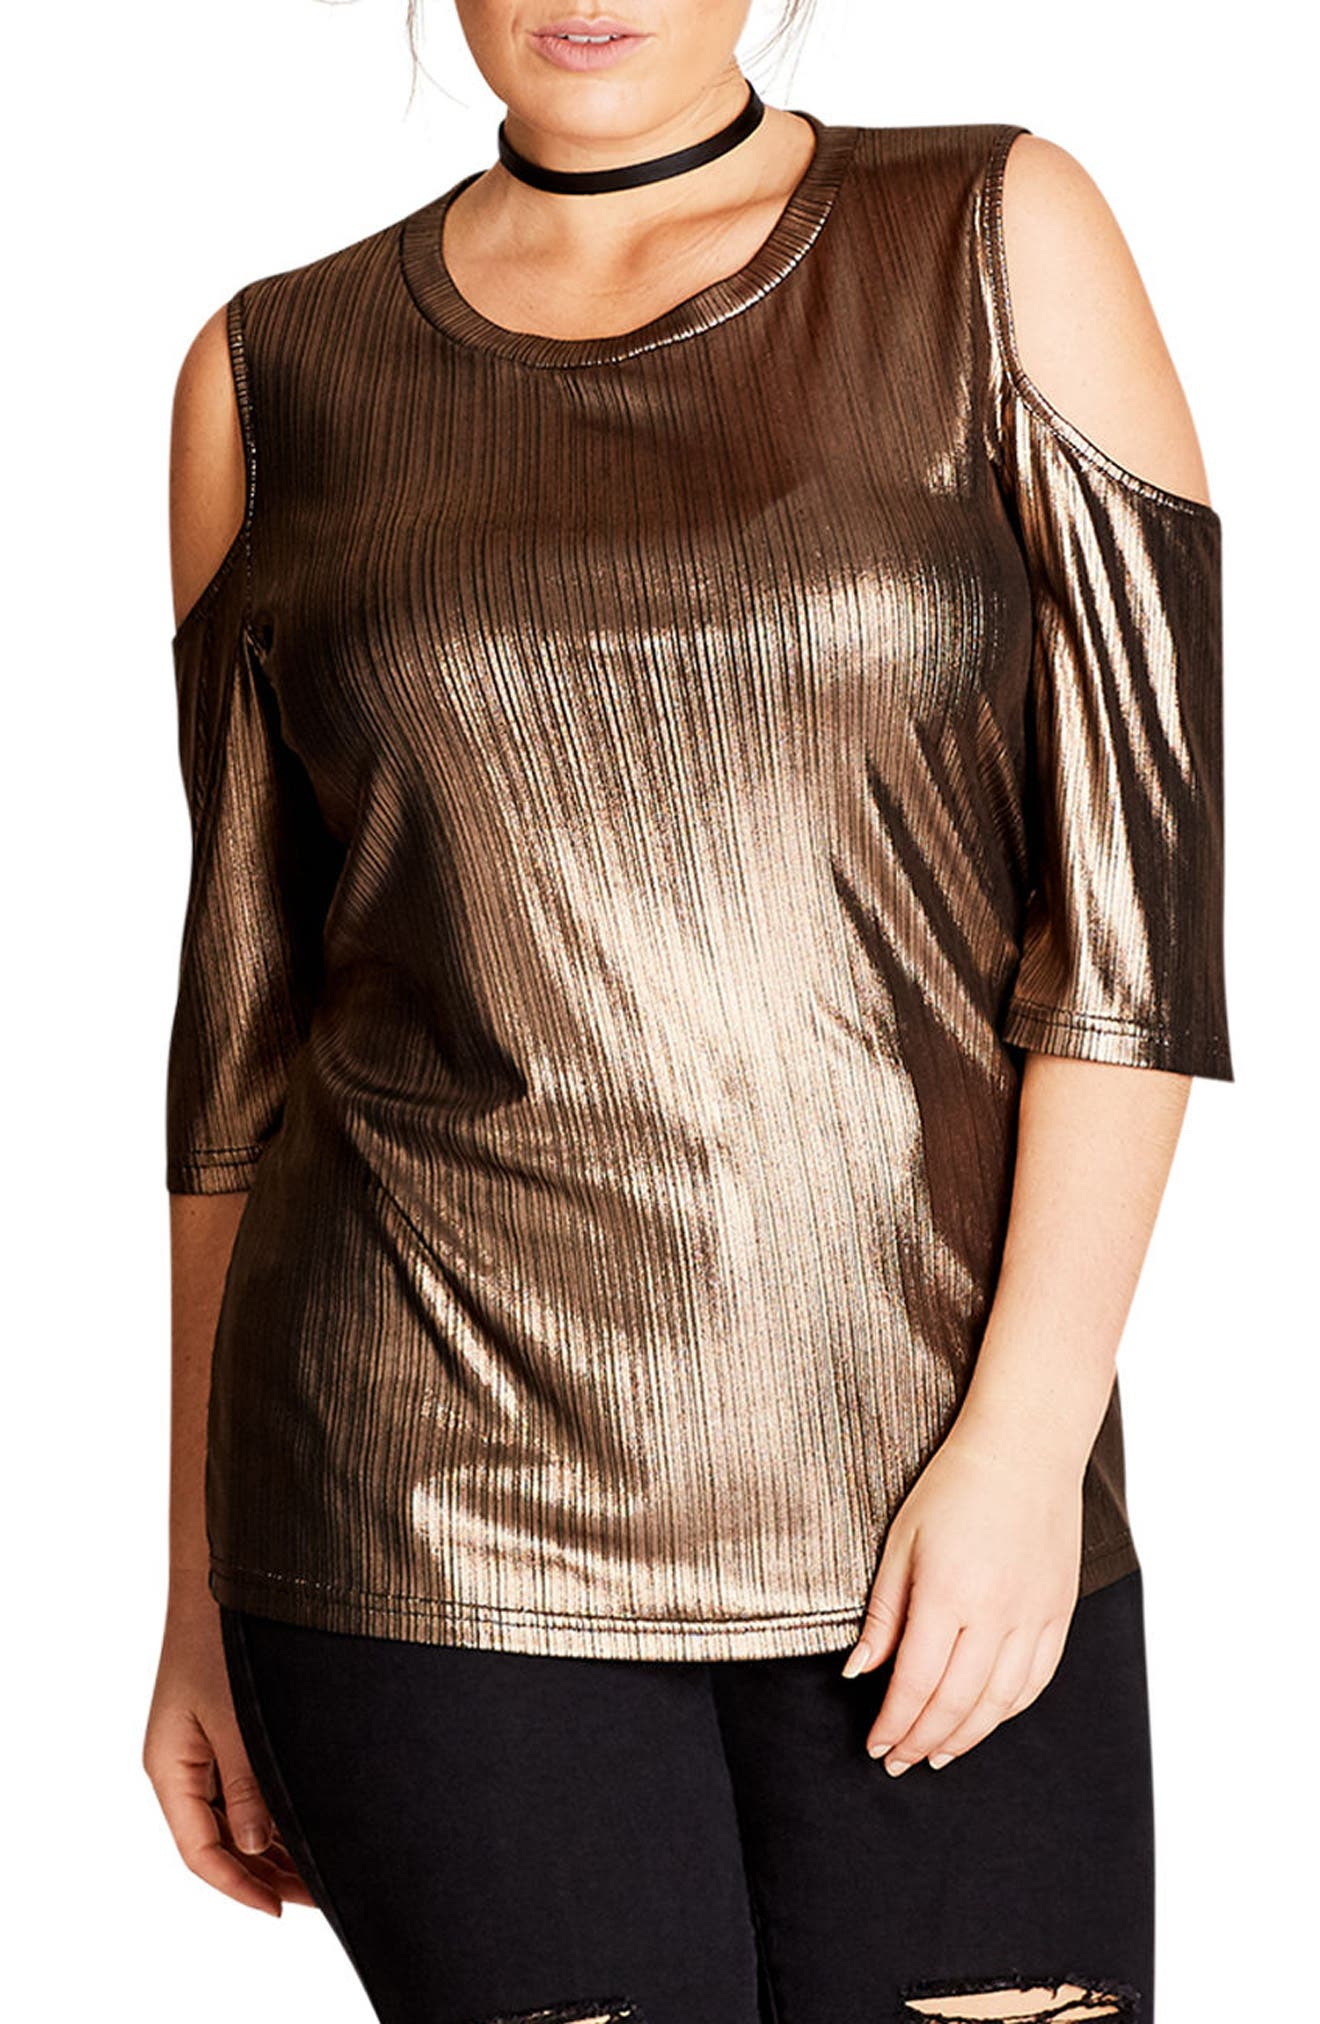 Alternate Image 1 Selected - City Chic Warriors Heart Cold Shoulder Top (Plus Size)